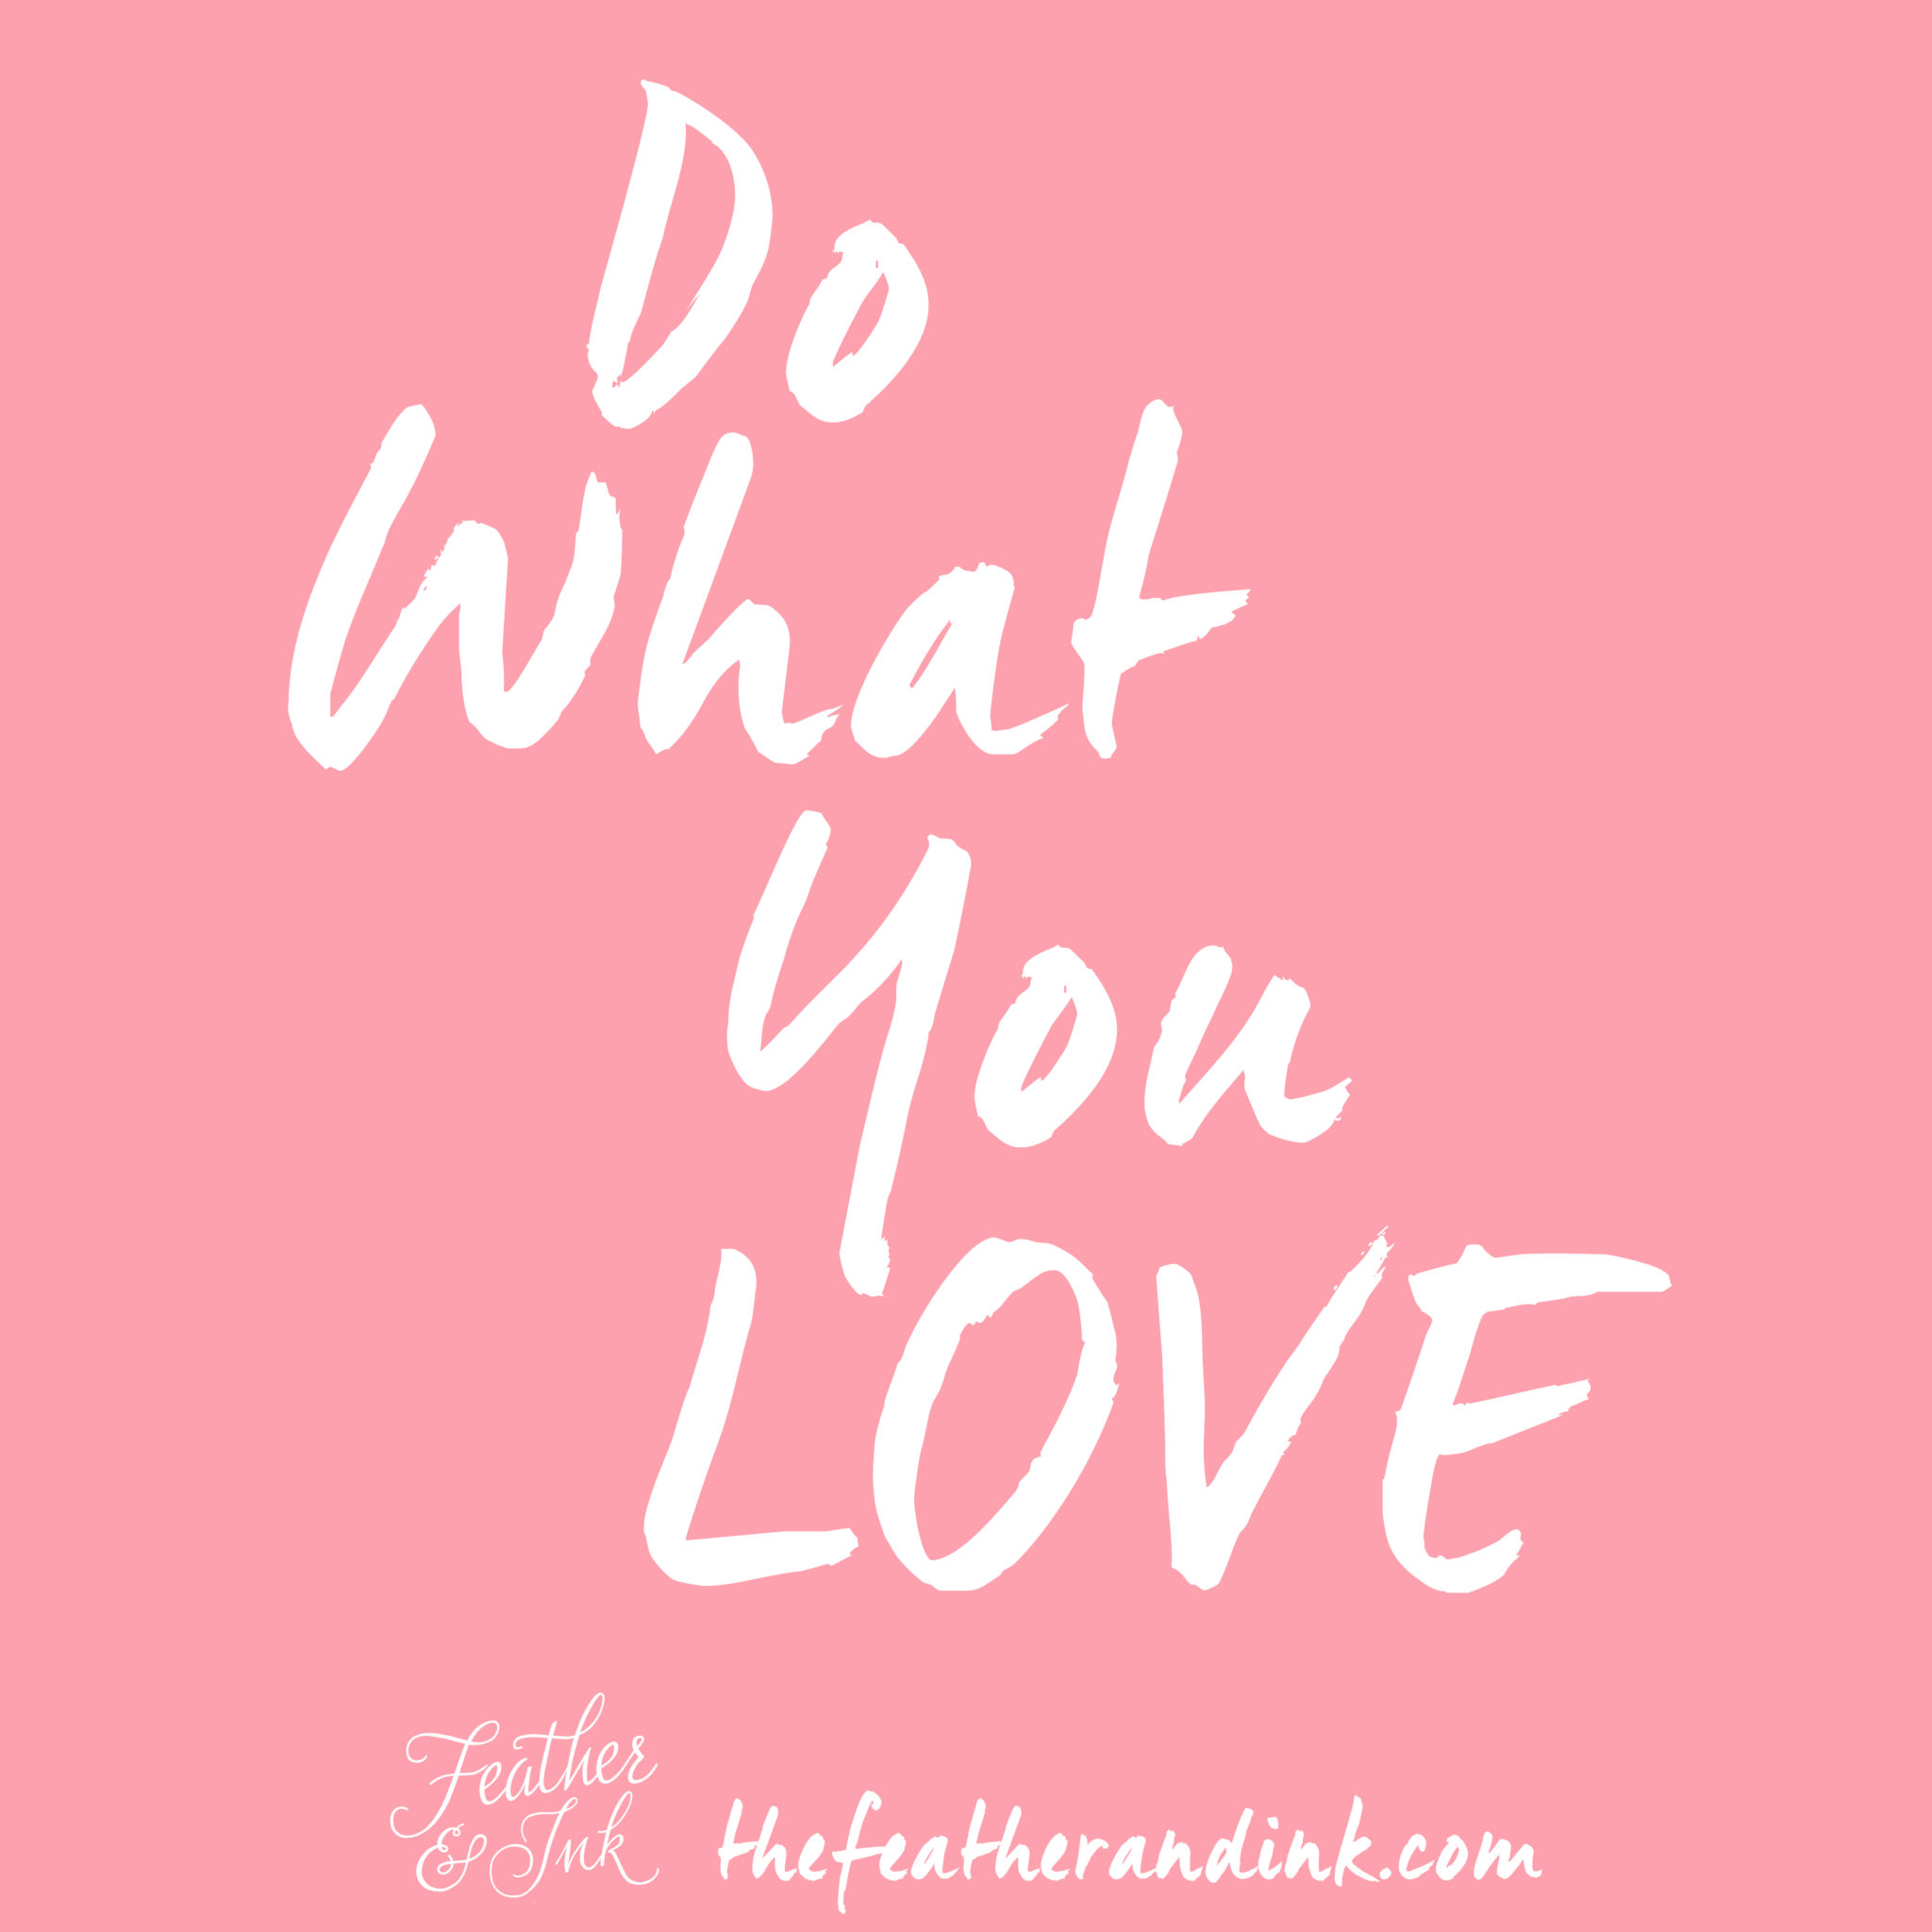 What Love What Love